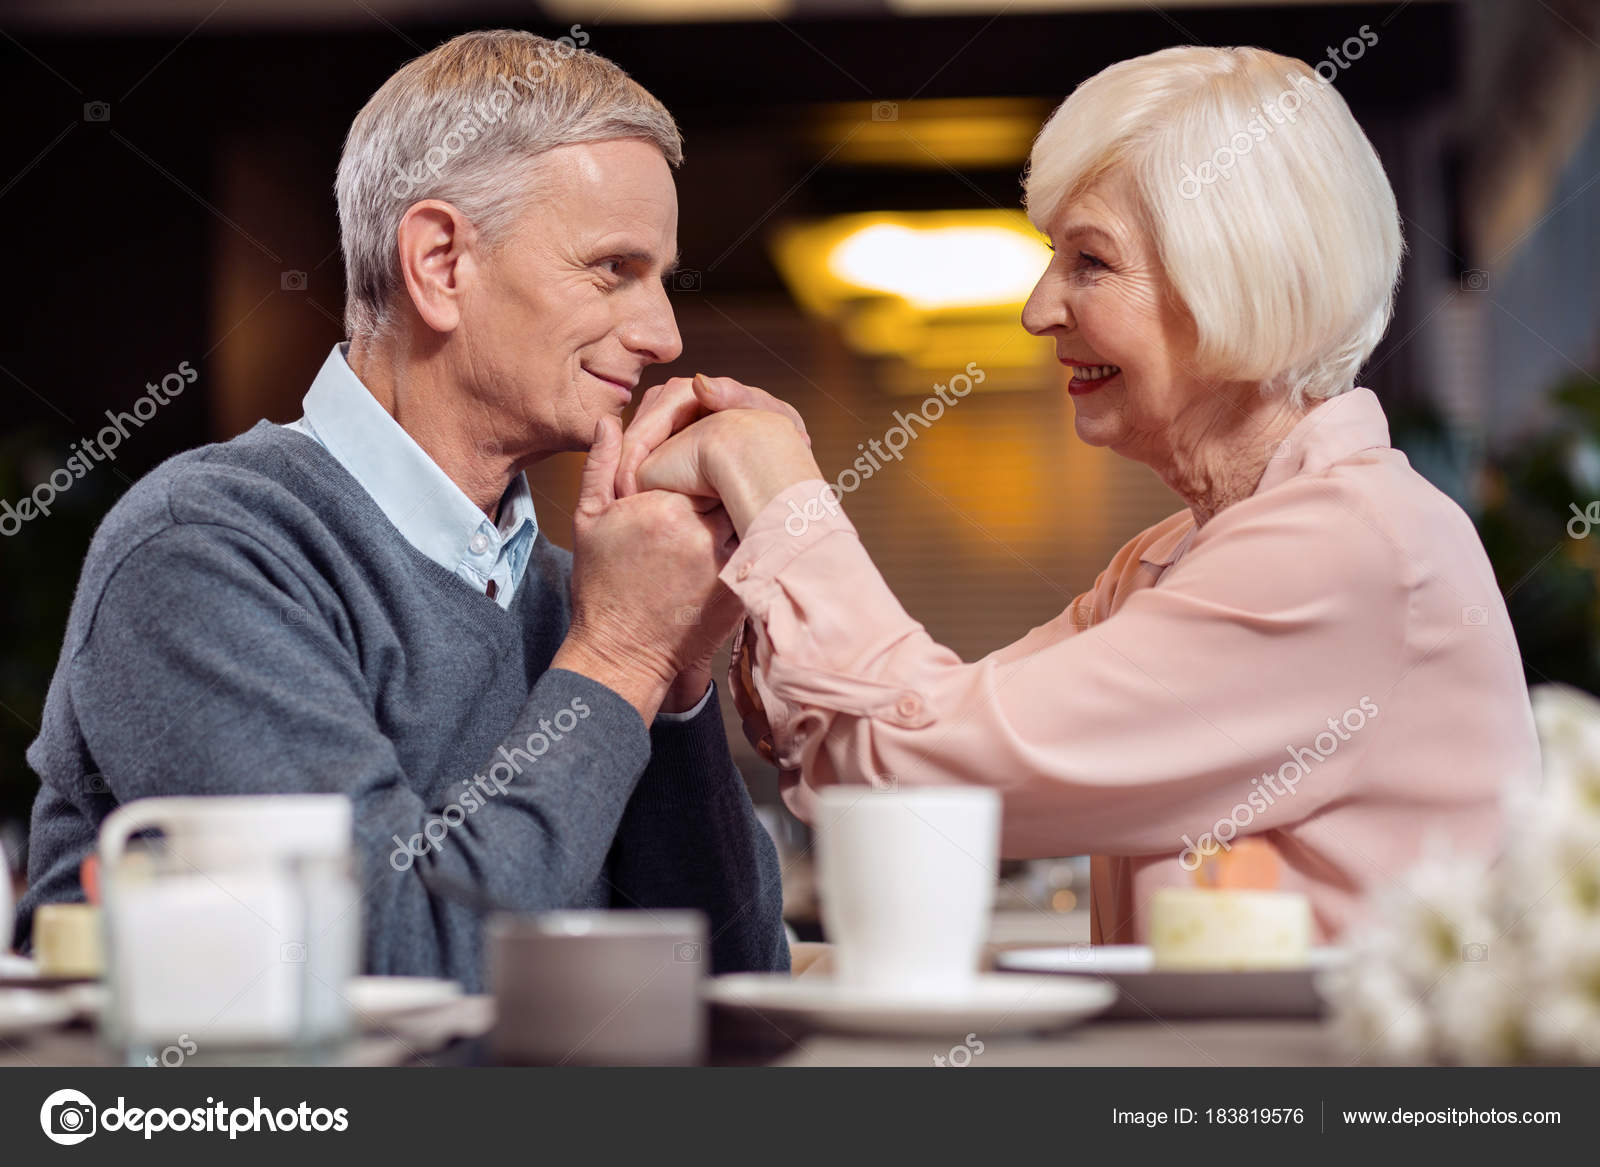 jolly mature man kissing wife hand — stock photo © yacobchuk1 #183819576